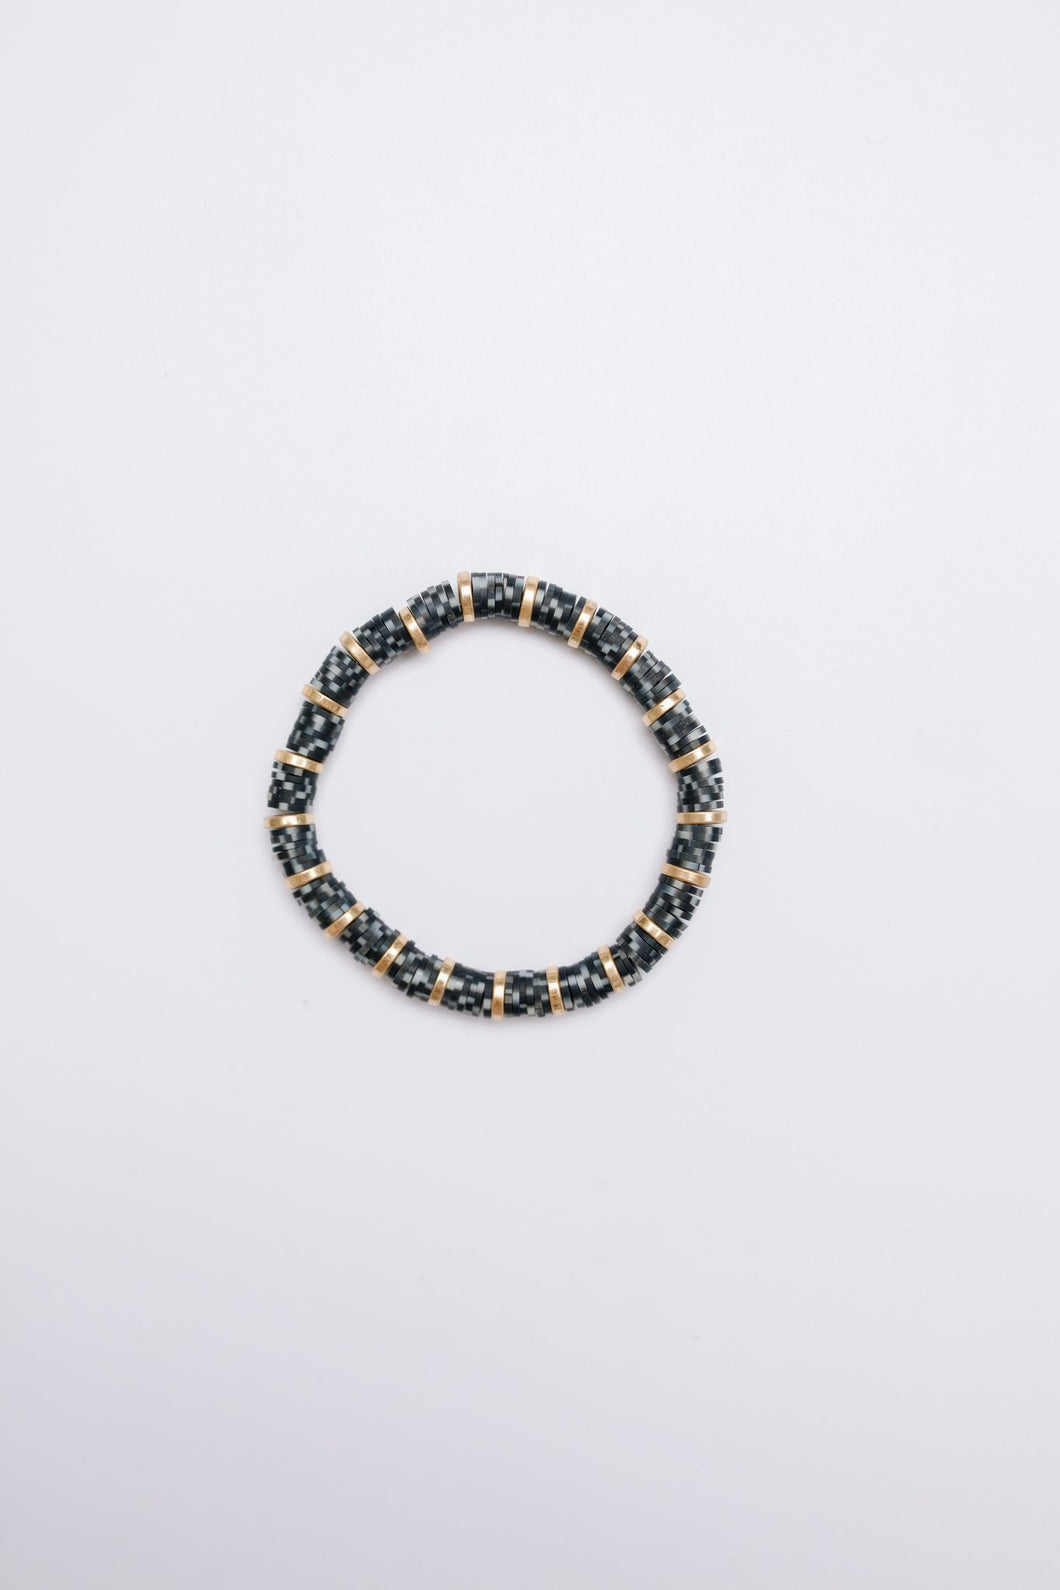 Up Late Beaded Bracelet Black